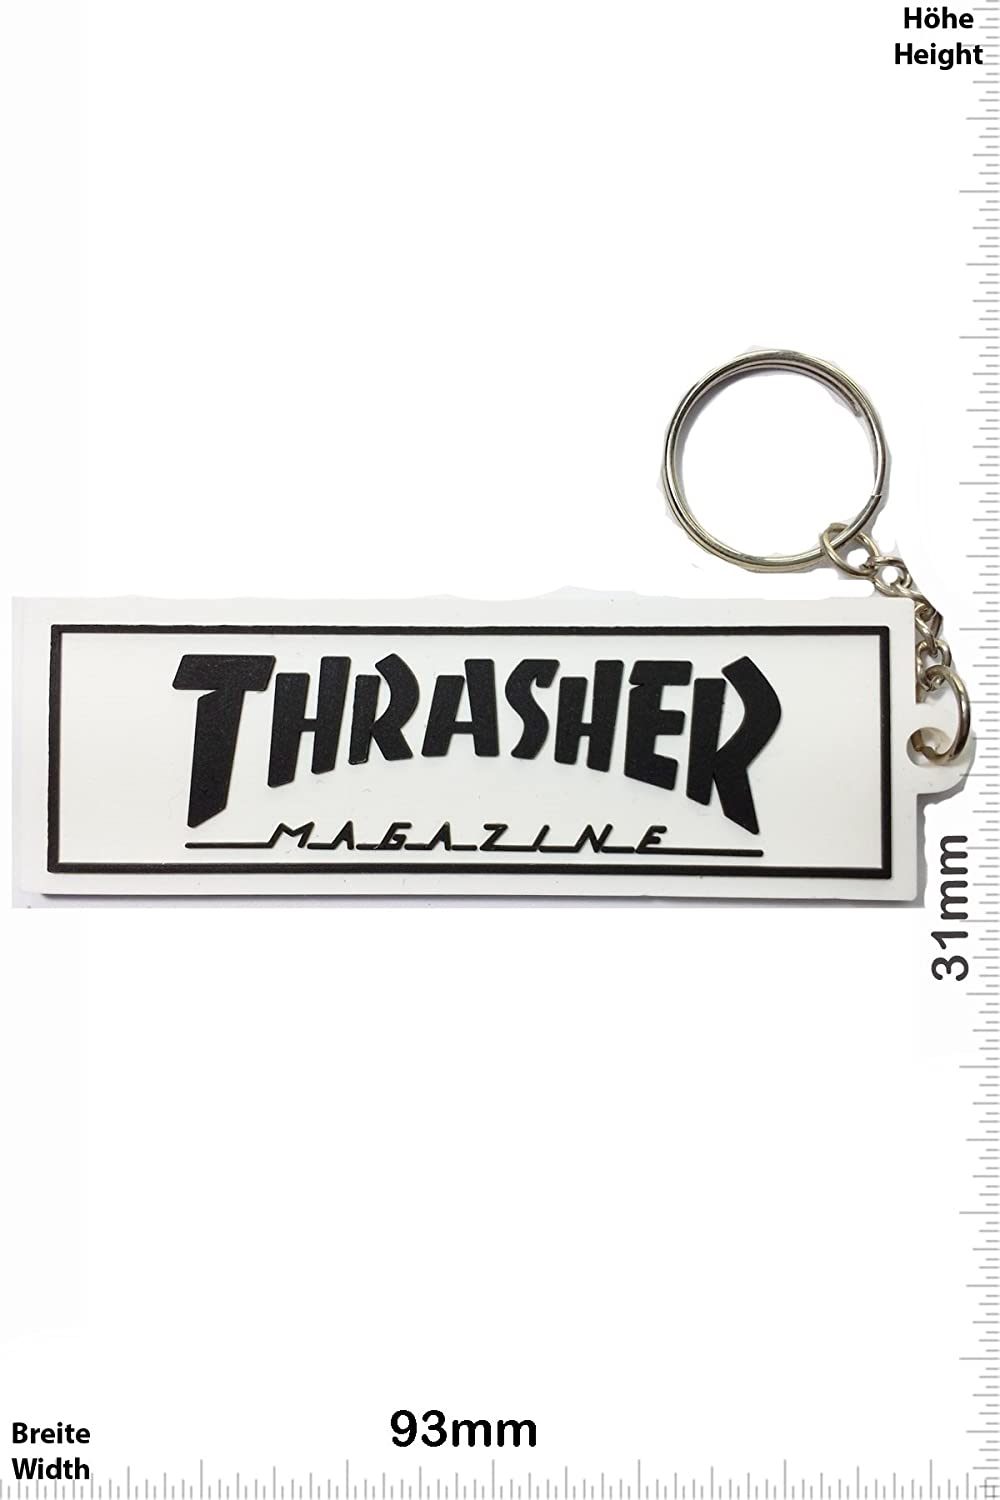 Keychains Porte-clés - Thrasher - white - Streetwear - Sport - Skater - Extremsport - Key Ring - Kautschuk Rrubber Keyring - perfect also bags, wallets or briefcase - Give away